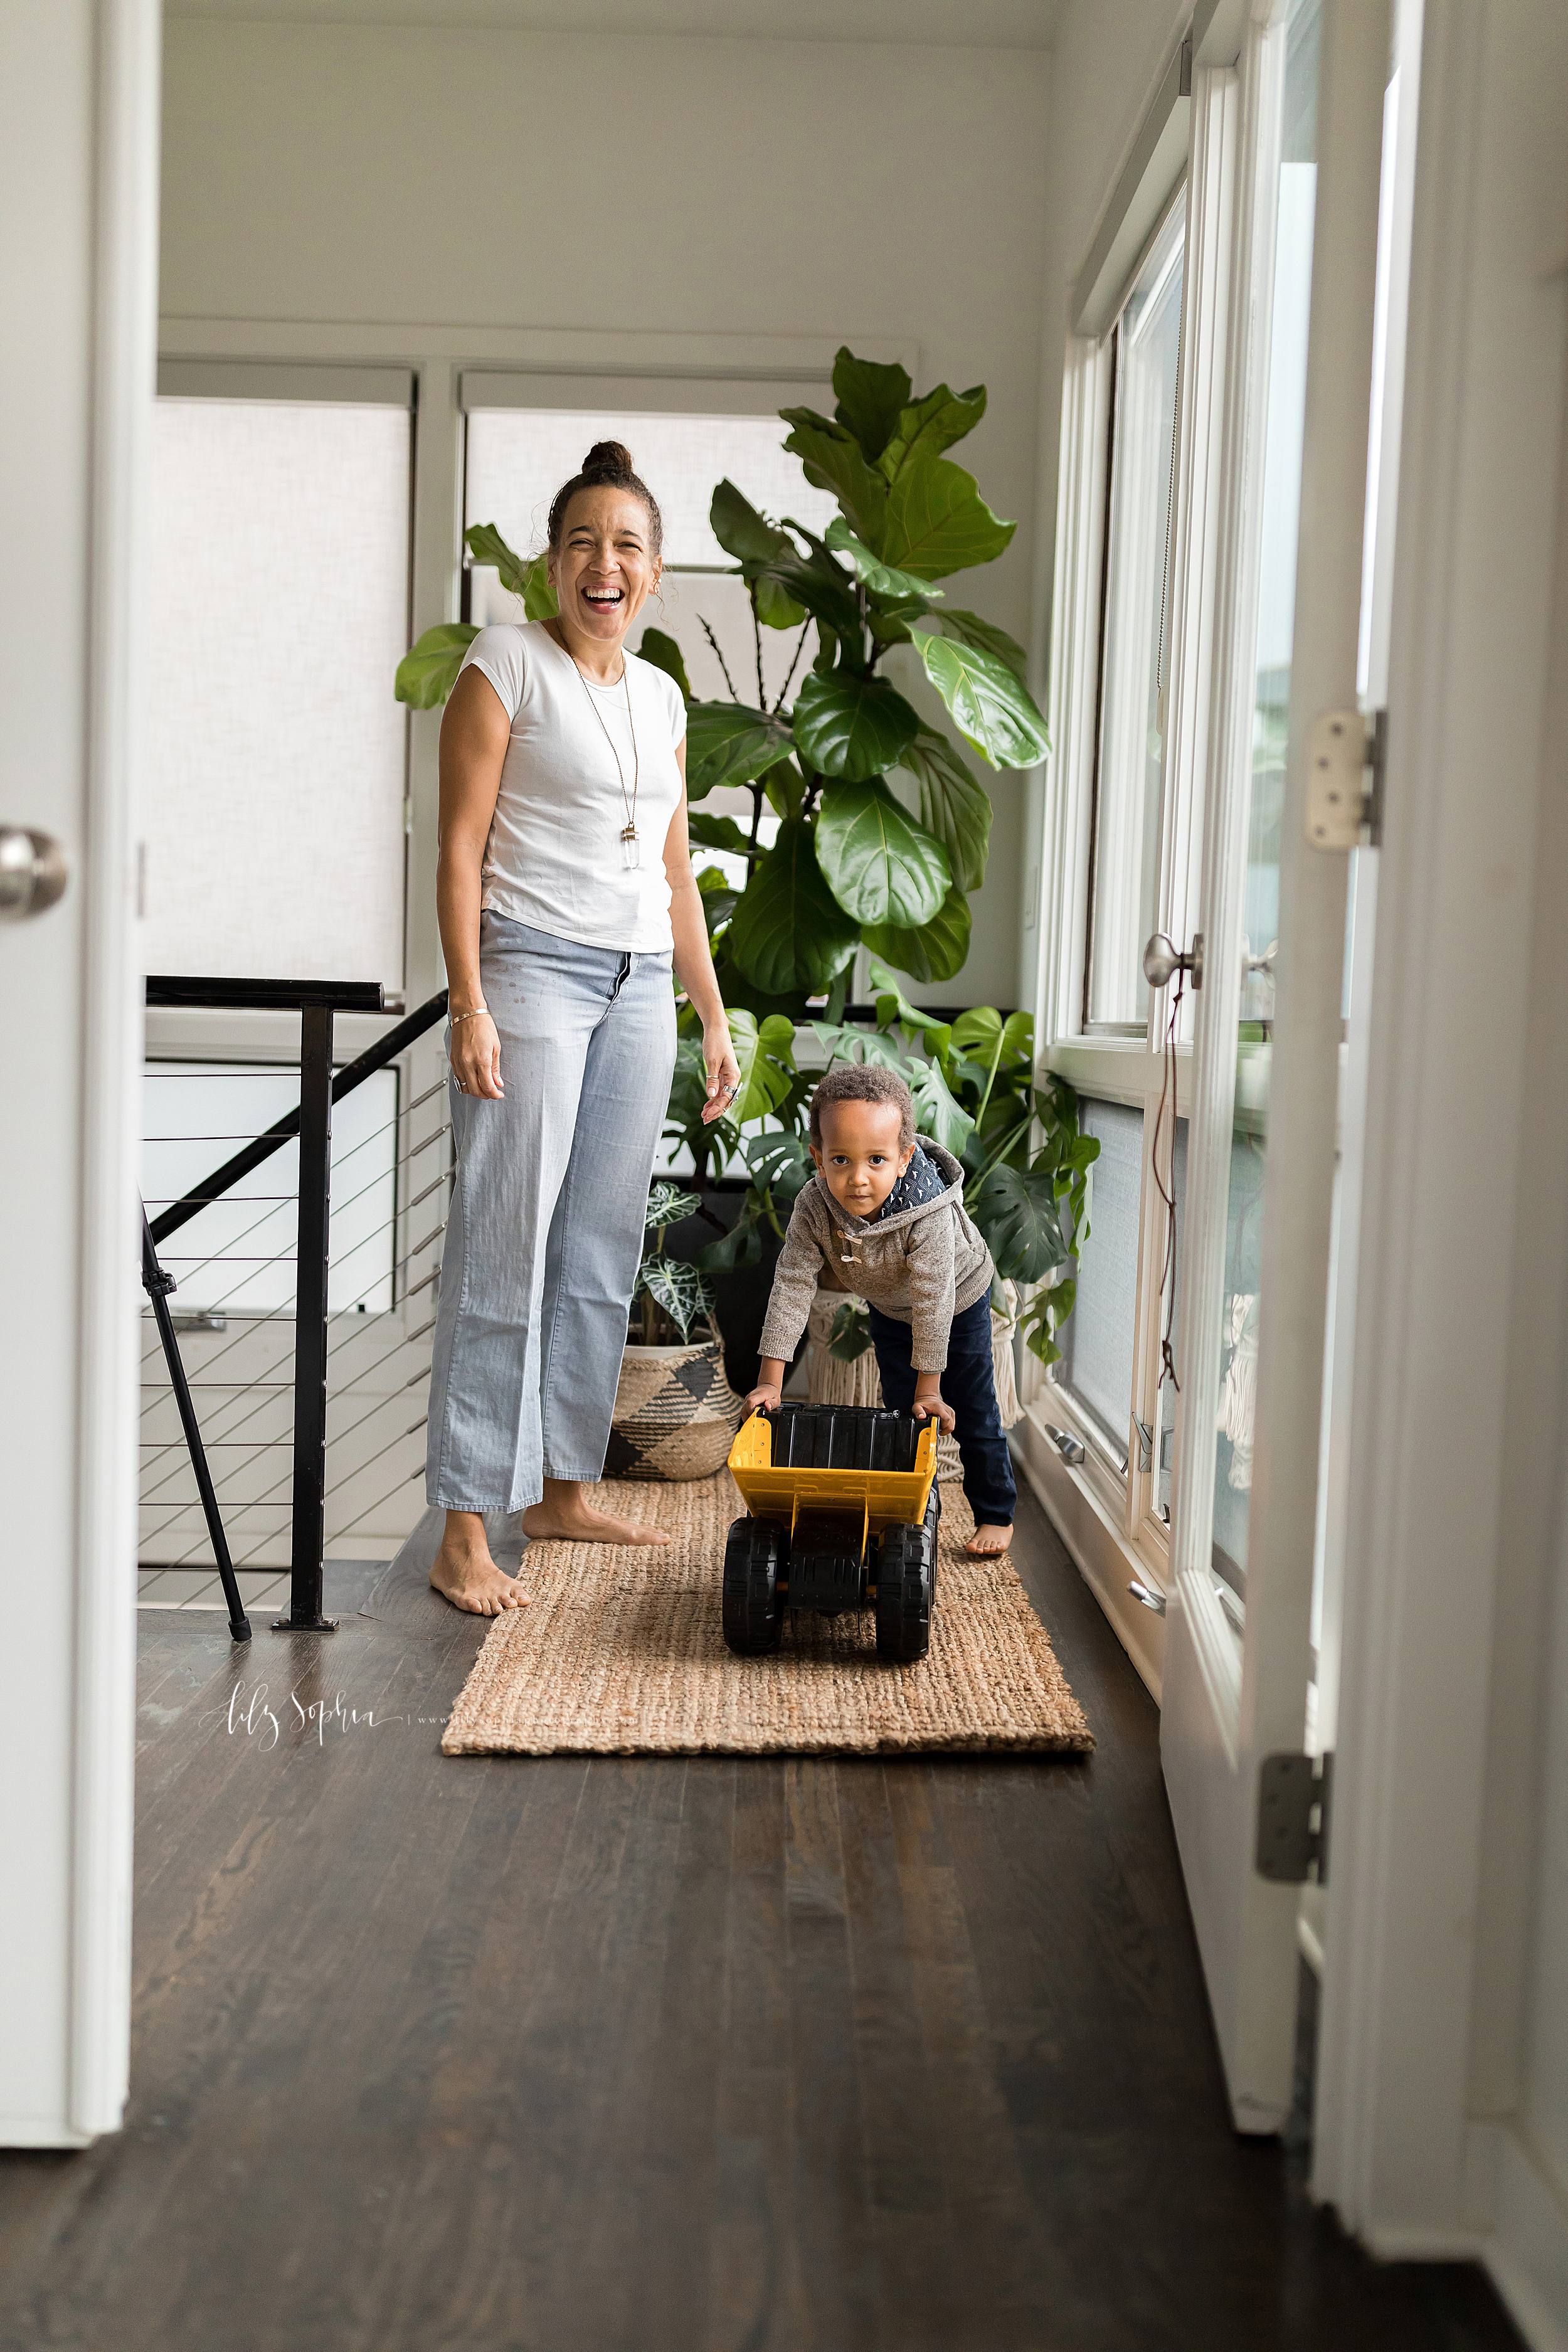 atlanta-midtown-inman-grant-park-beltline-old-fourth-ward-lily-sophia-photography-in-home-lifestyle-mommy-and-me-session-family-photographer-toddler-boy_0415.jpg